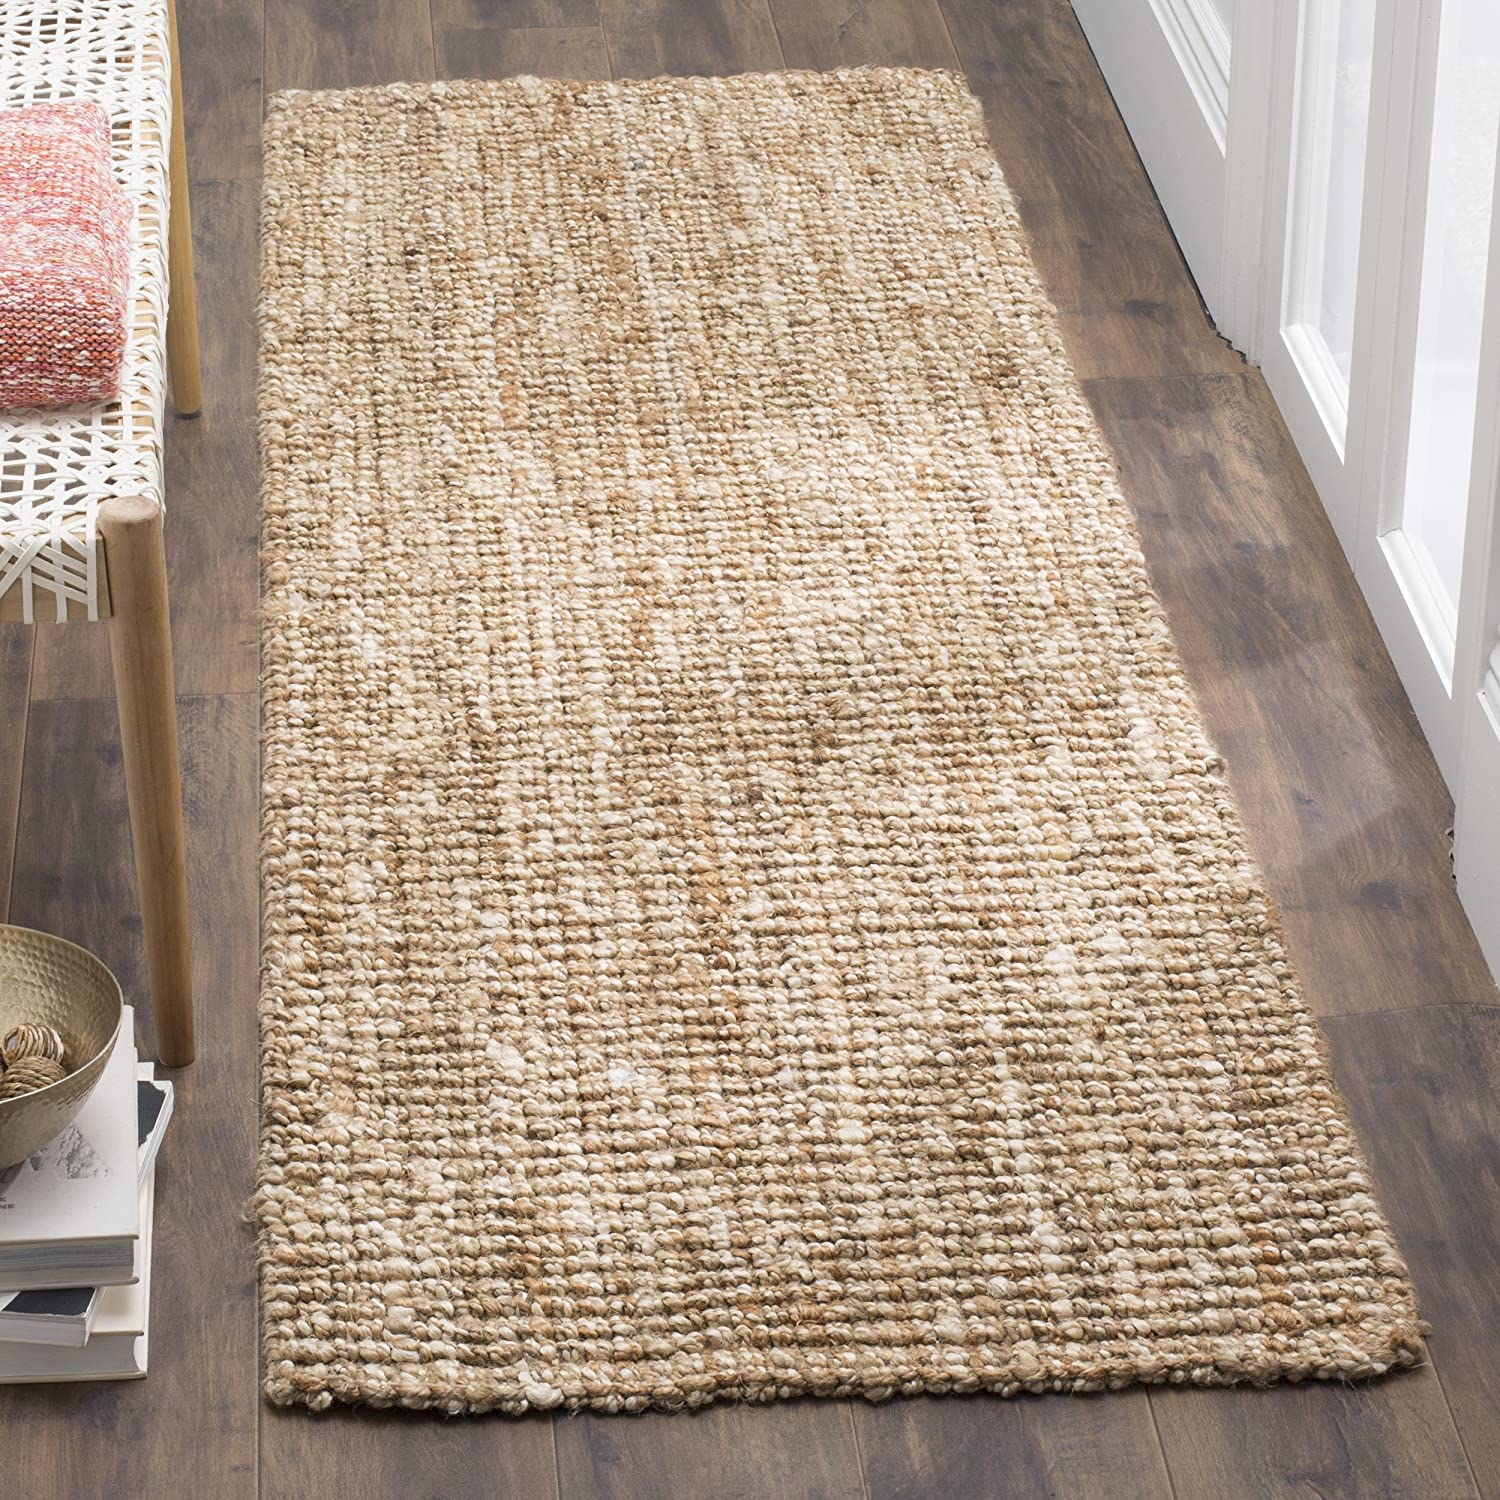 """Safavieh Fiber Collection NF447N Hand-Woven 0.5-inch Thick Chunky Textured Jute Runner, 2' 6"""" x 12', Natural/Ivory"""